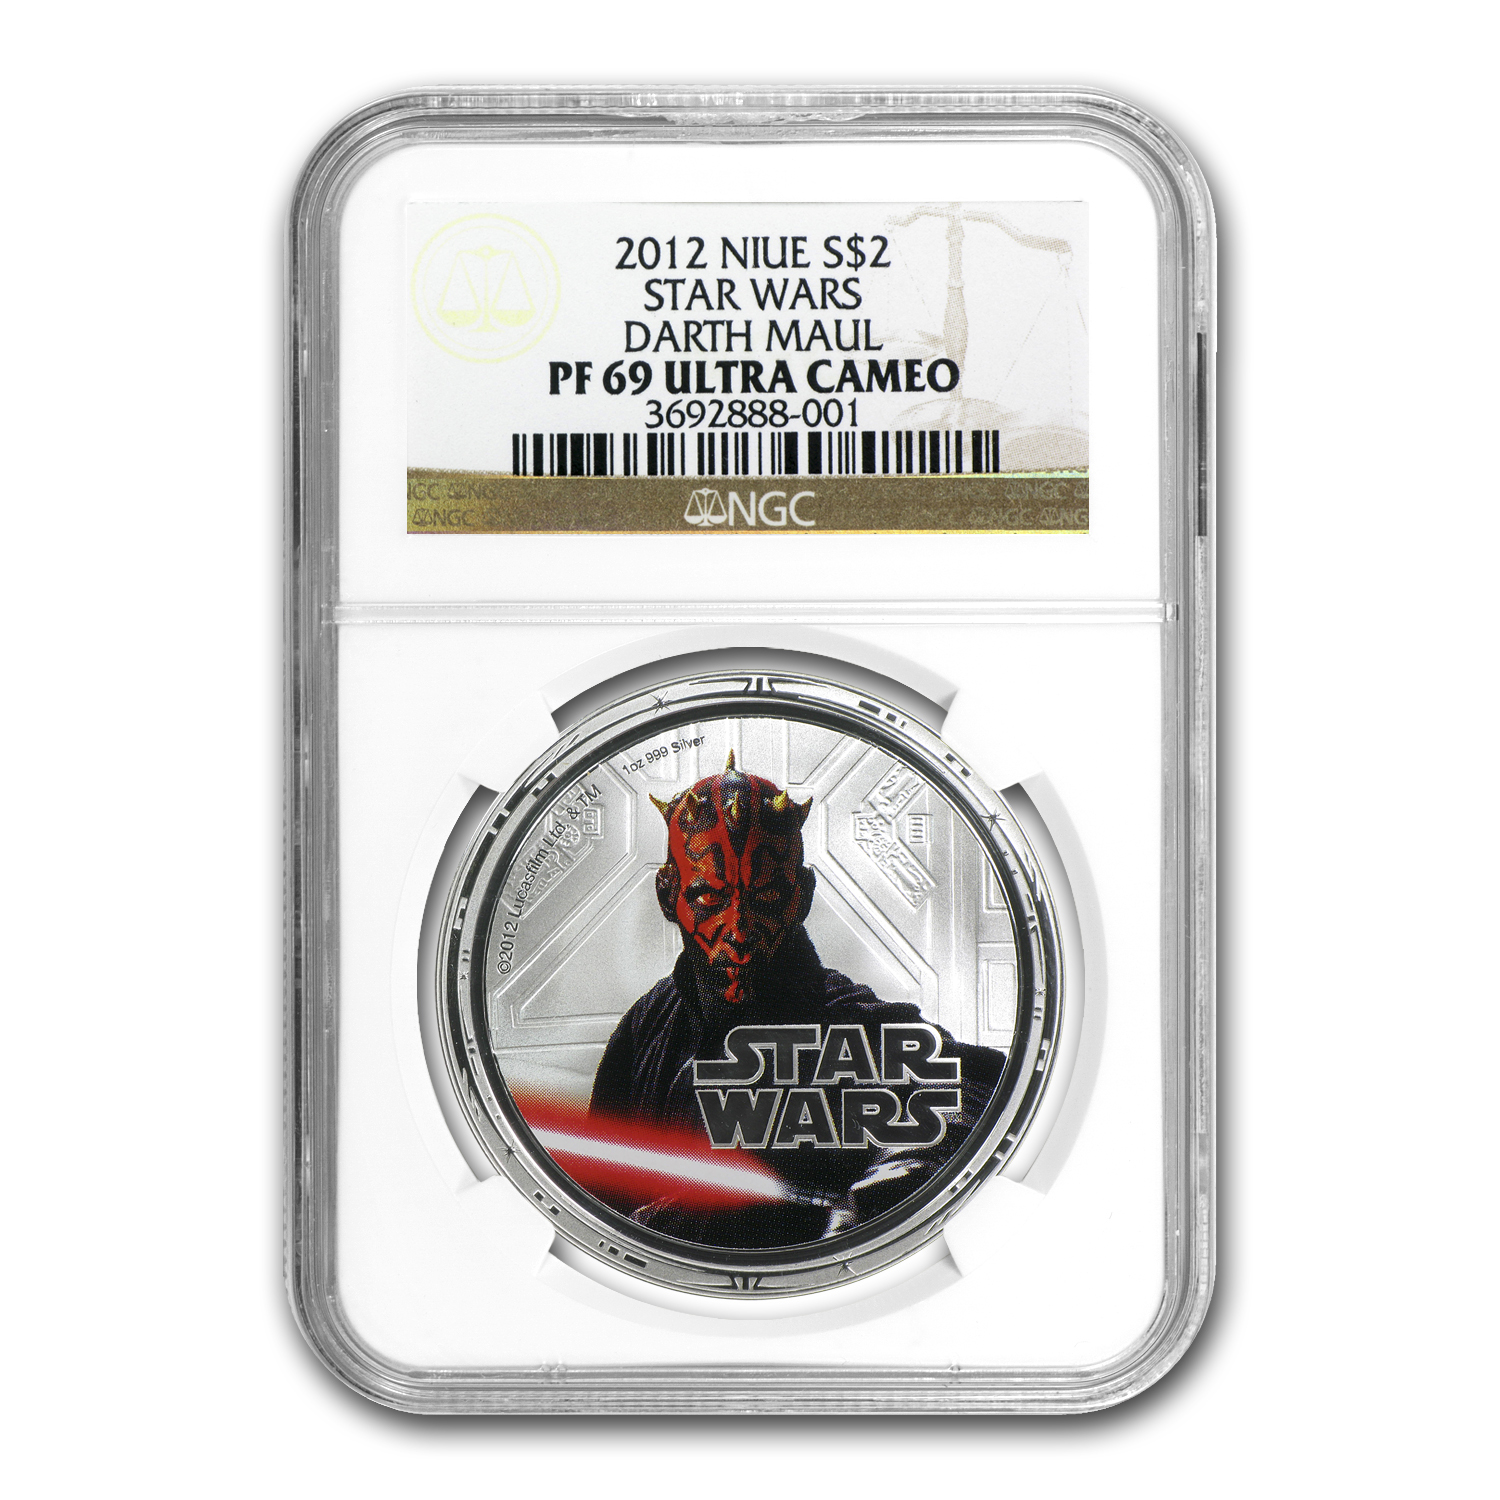 2012 Niue 1 oz Silver $2 Star Wars Darth Maul PF-69 NGC